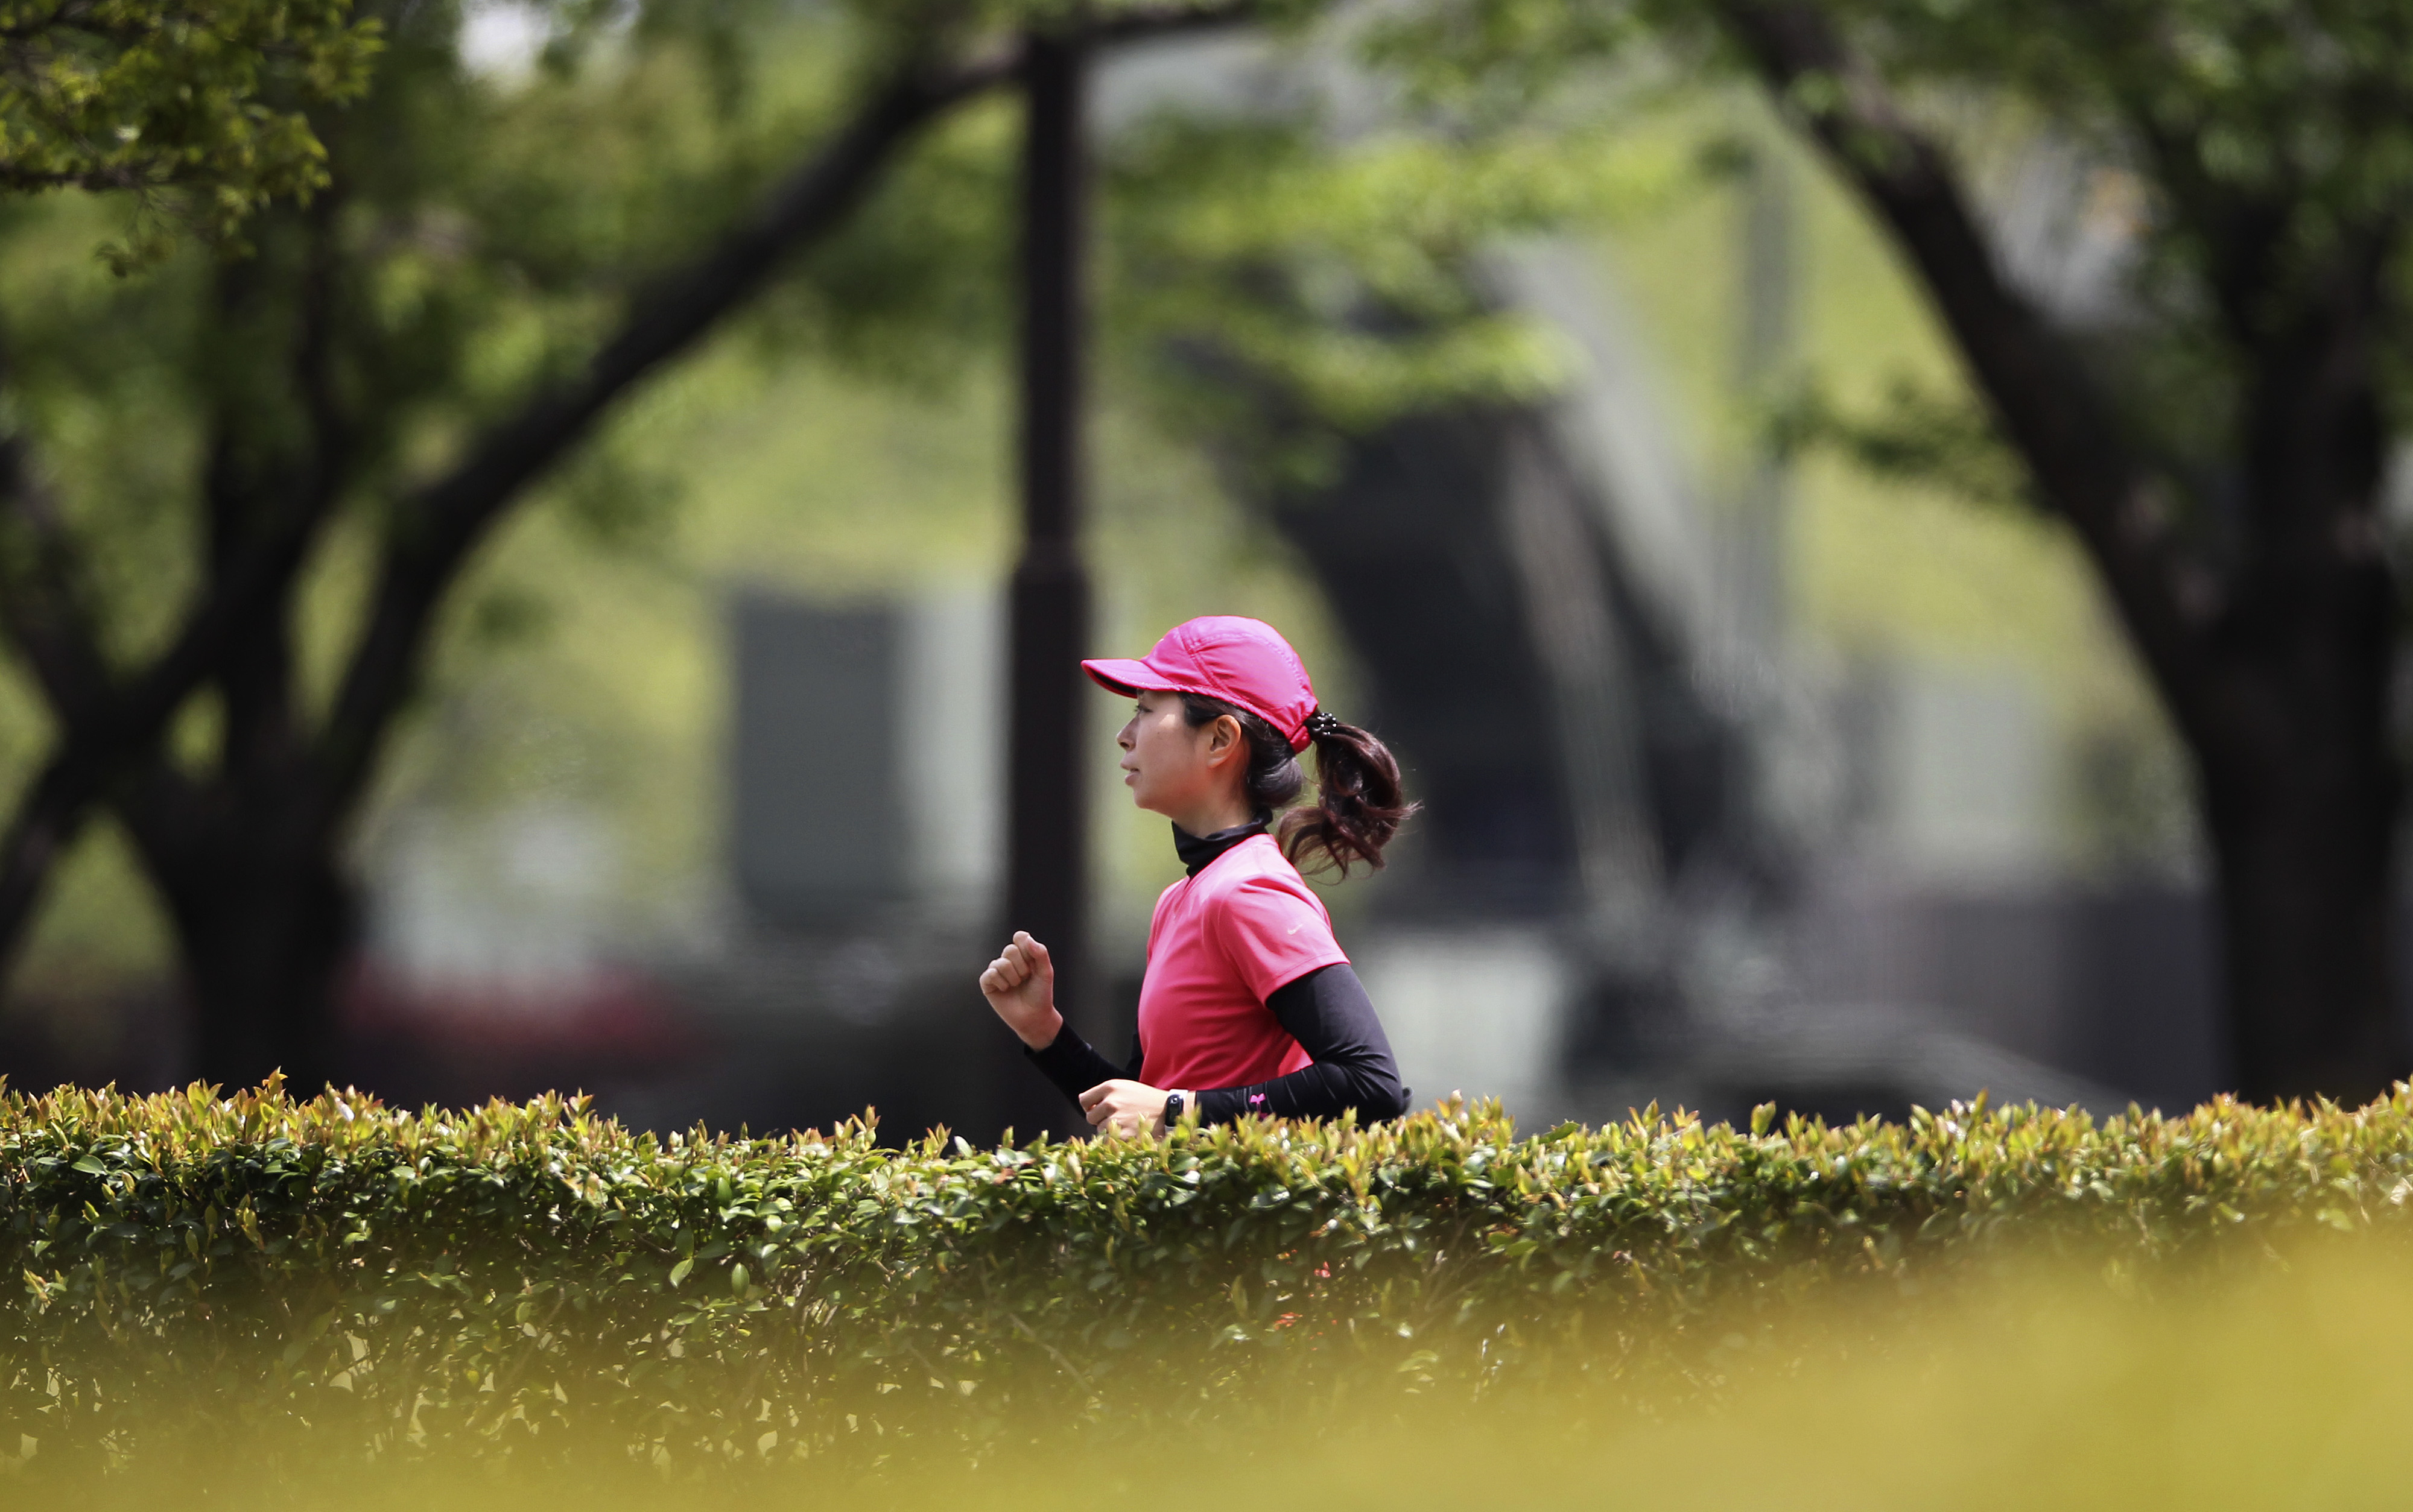 Police issue safety tips after Loudoun Co. runner attacks